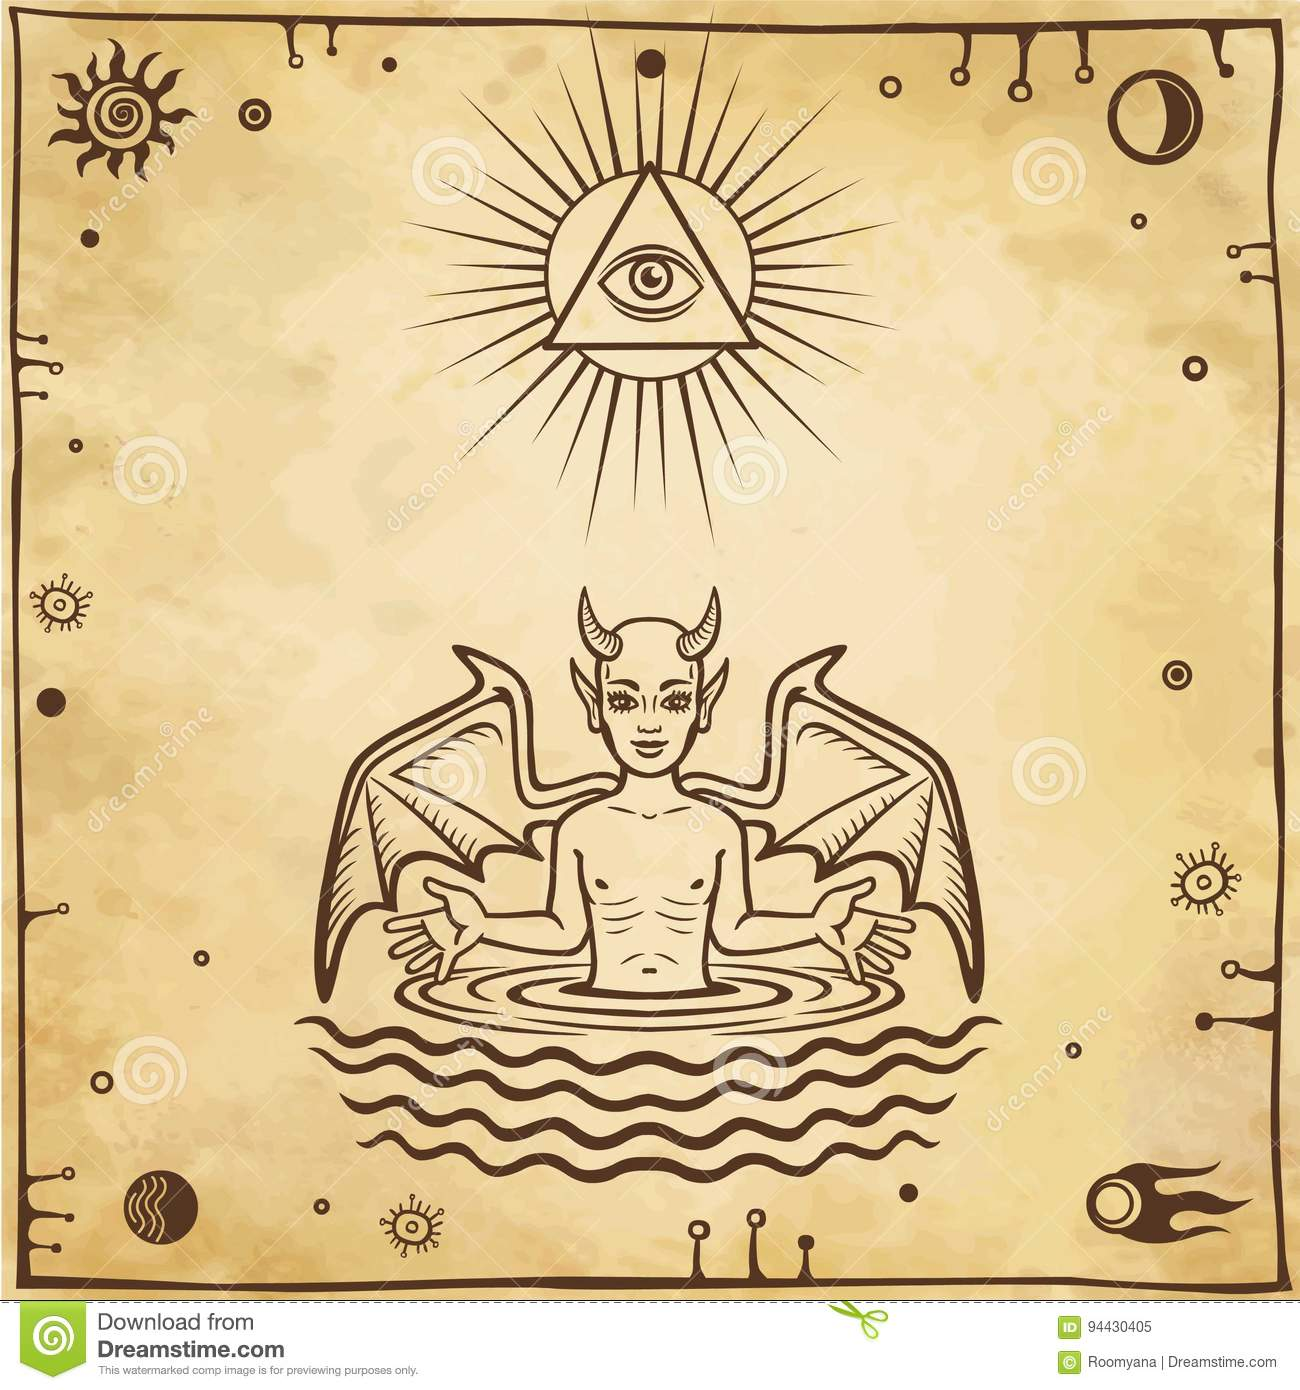 Alchemical drawing: the little demon is born from water. Esoteric, mystic, occultism.